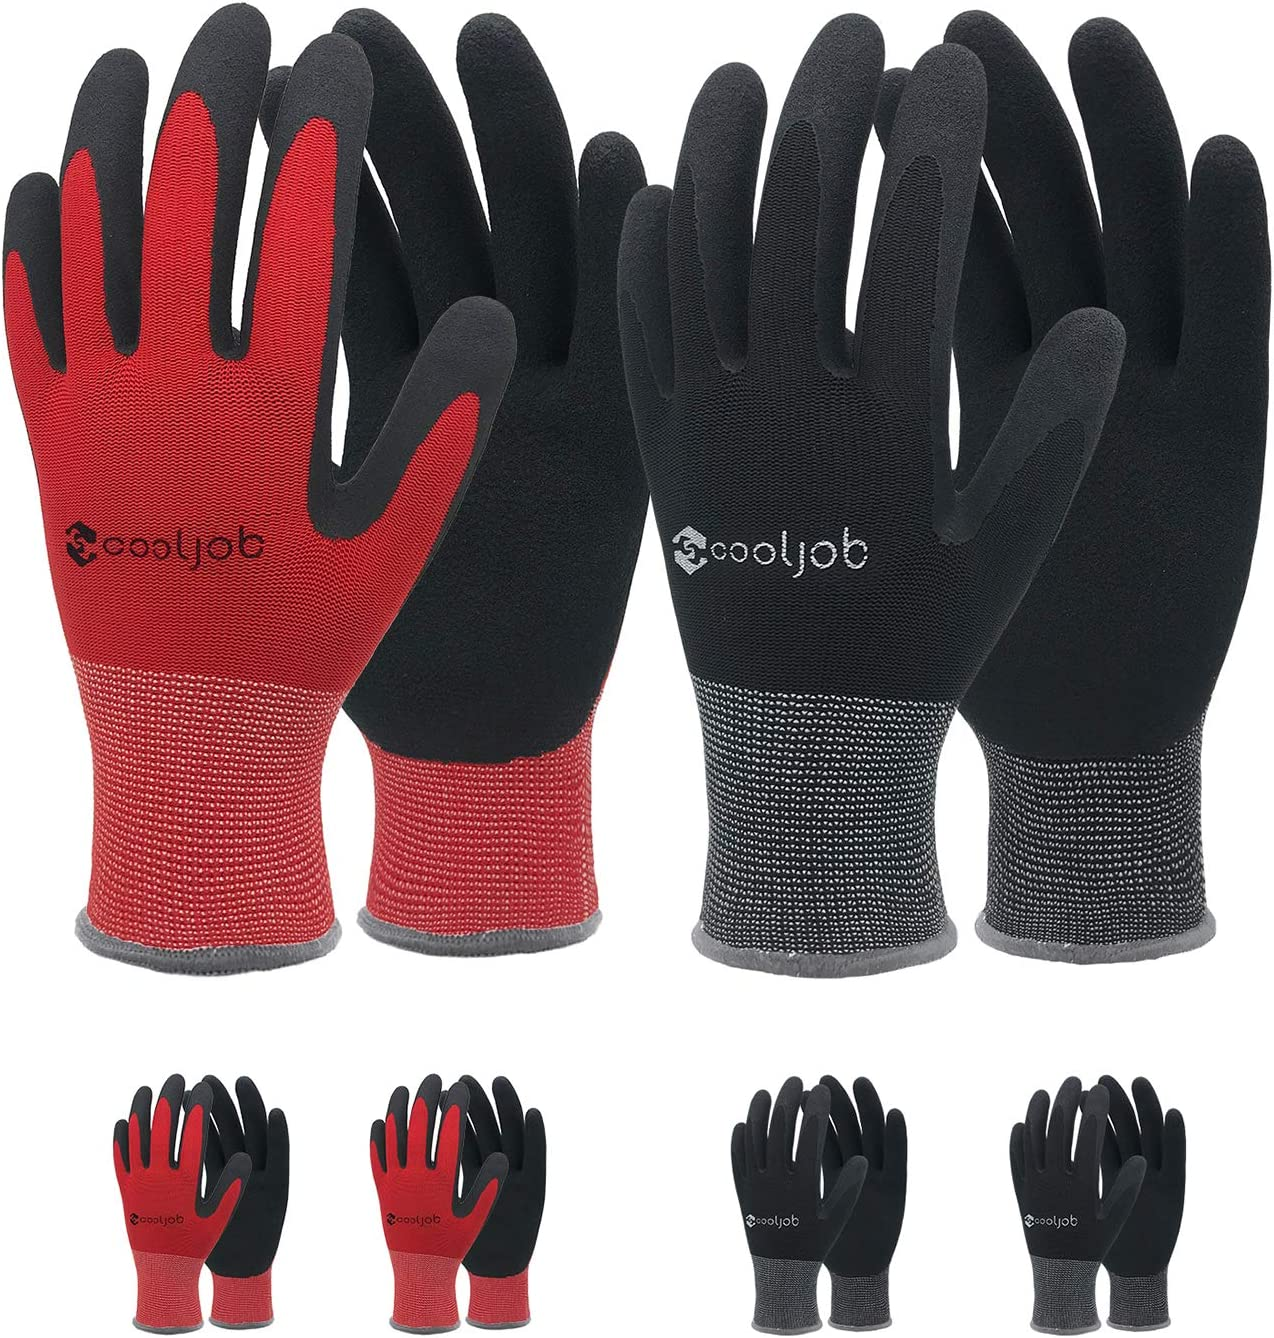 COOLJOB Gardening Gloves for Men, 6 Pairs Breathable Rubber Coated Garden Gloves, Work Gloves for Men, Men's Large Size Fits Most, Black & Red (Half Dozen L)